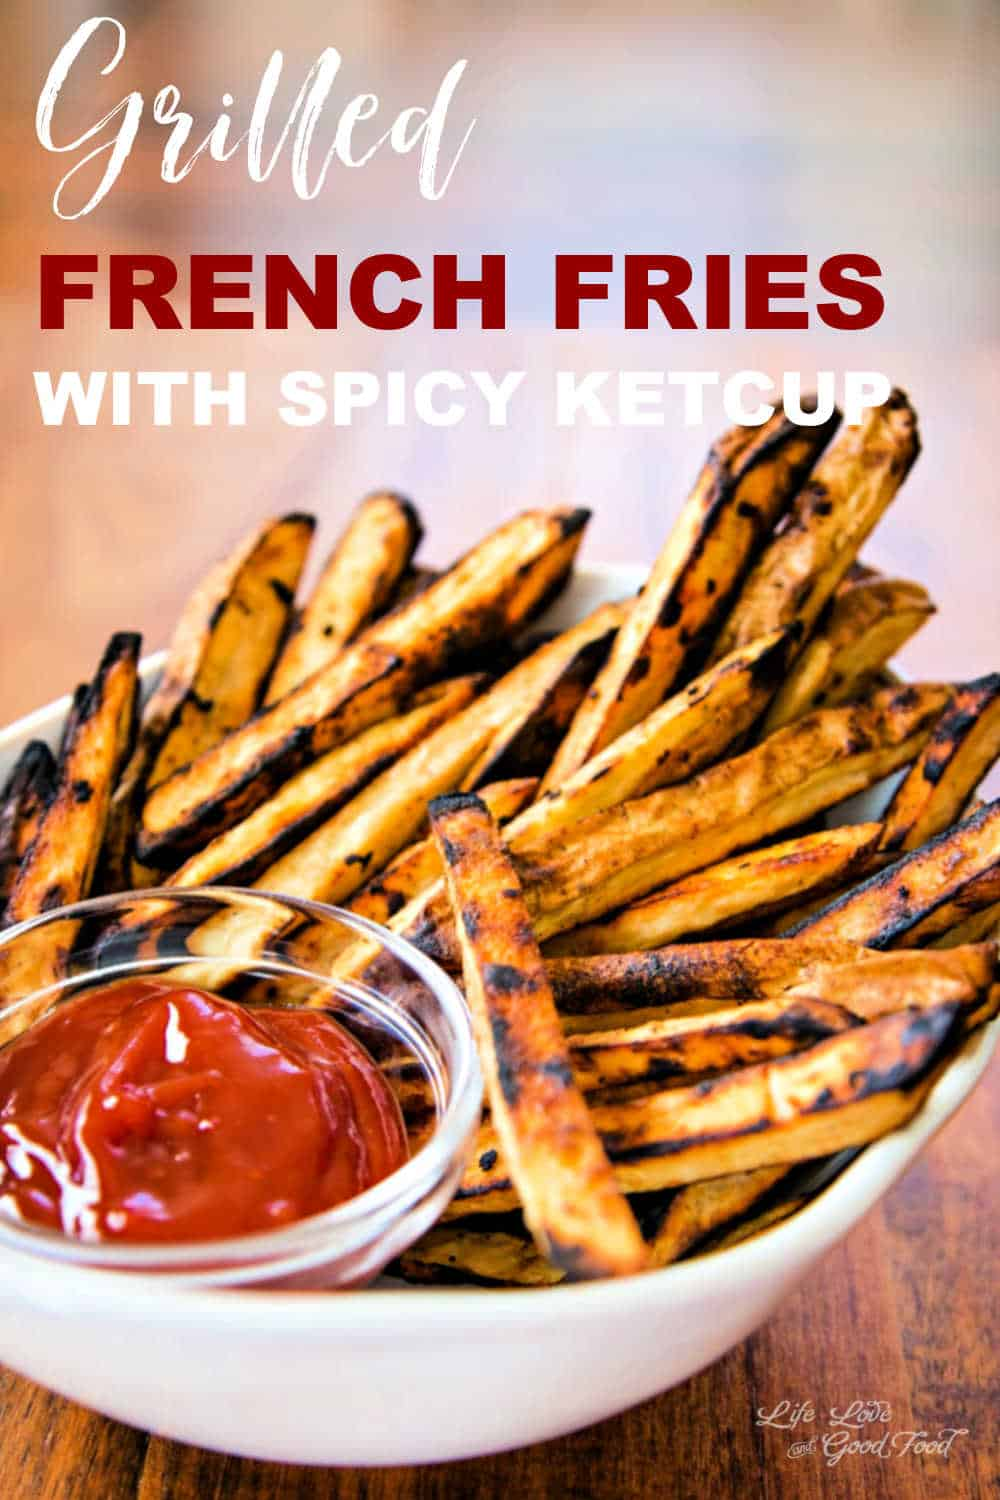 Satisfy that junk food craving with this flavorful, no-guilt recipe for Grilled French Fries with Spicy Ketchup. Say what?! French fries on the grill? Absolutely! These delicious hand-cut French fries get nice and crispy on the outside and stay fluffy on the inside without using a deep fryer. Completely made from scratch using Idaho russet potatoes and flavored with garlic and a little seasoned salt, grilled French fries are a healthier choice. Served warm with a zesty ketchup sauce.